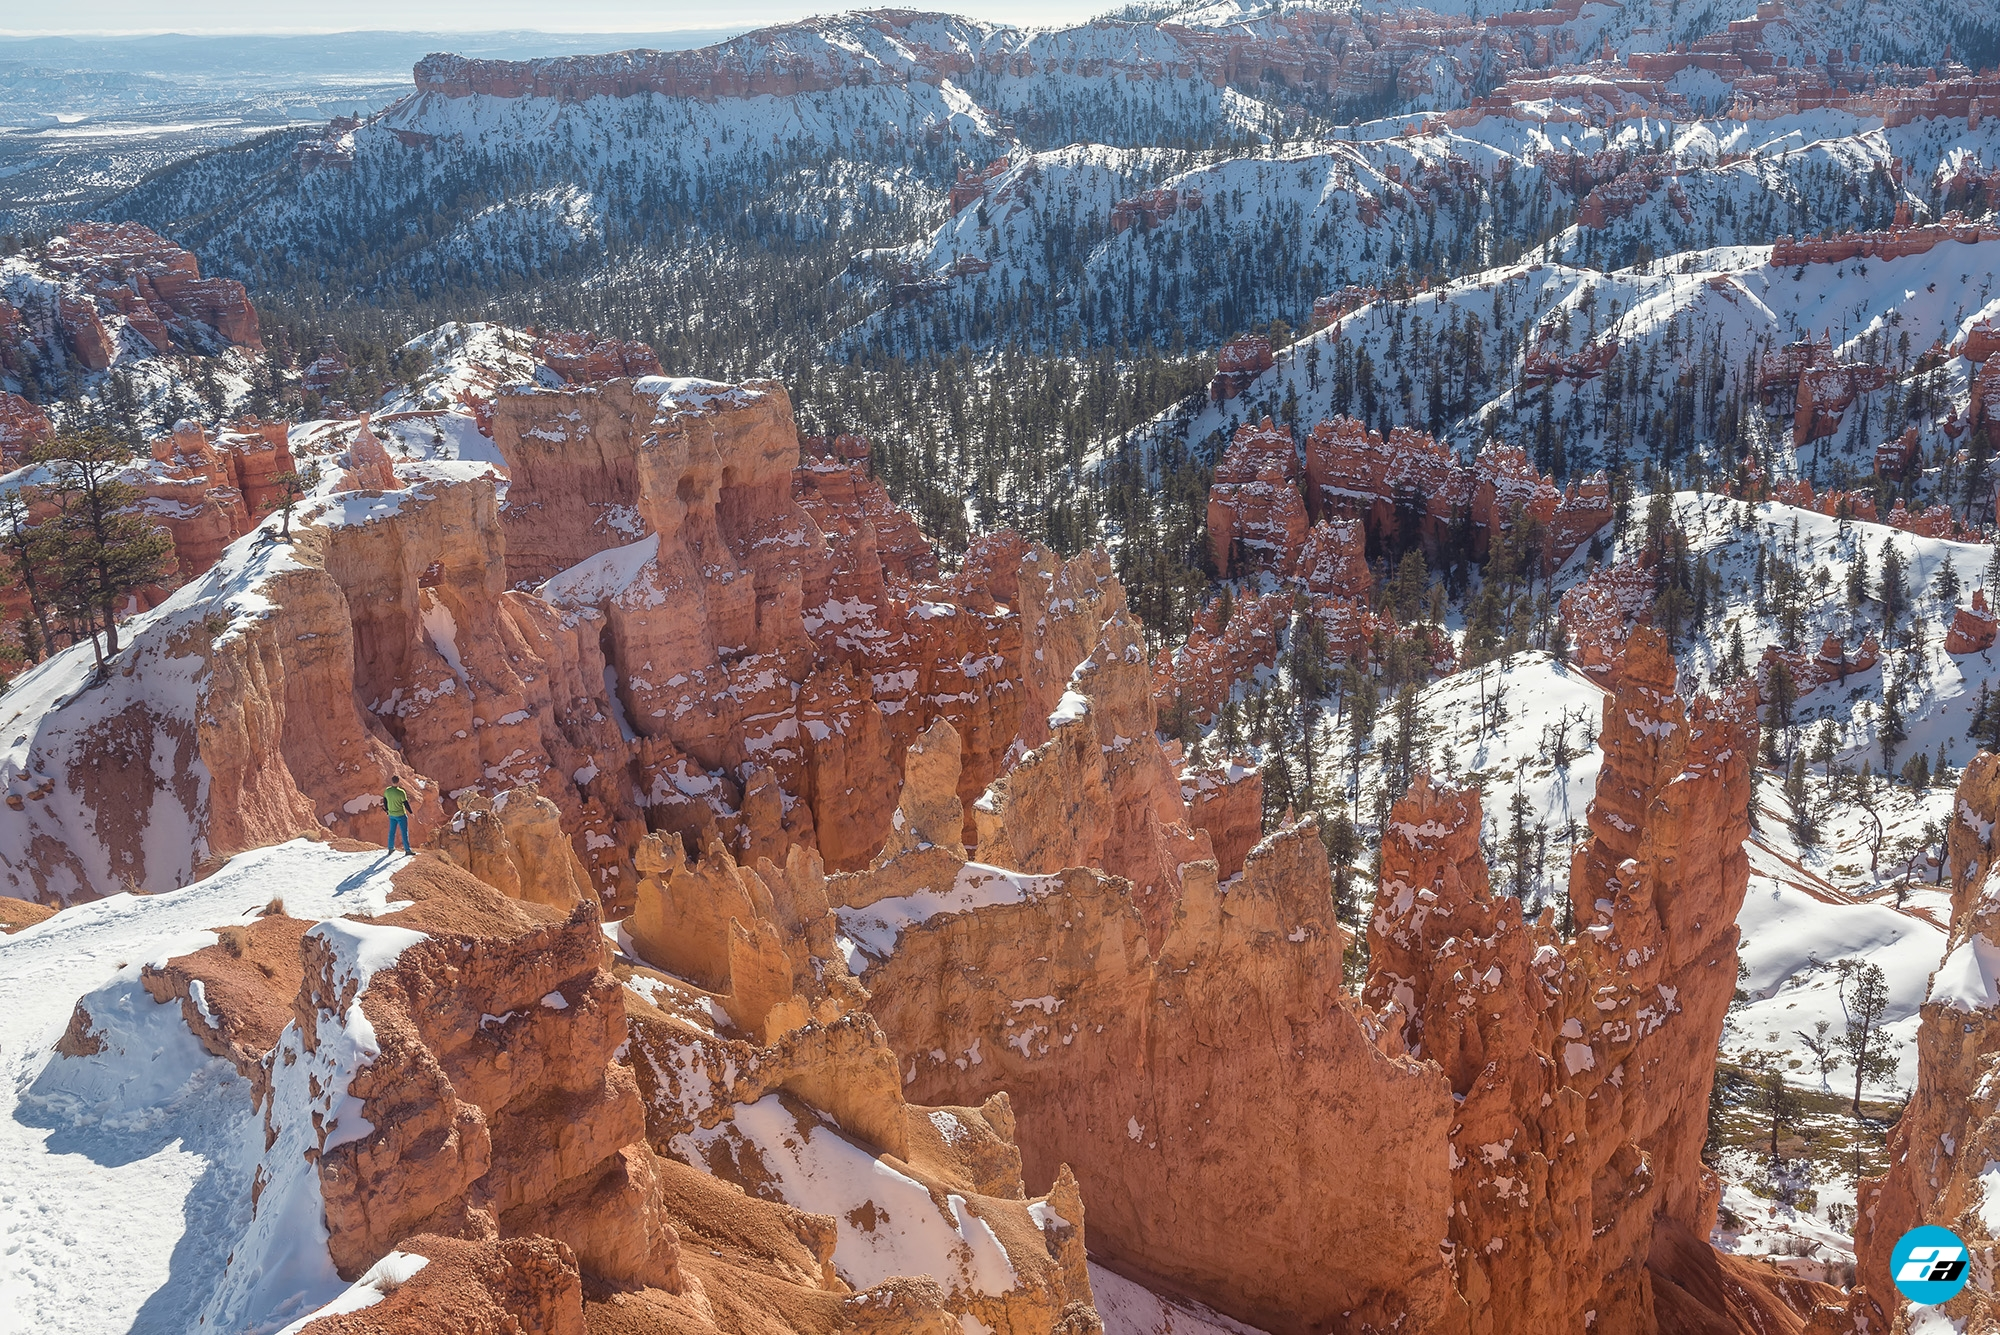 Bryce Canyon National Park, Utah, Arizona. Hiking. Valley. Canyon